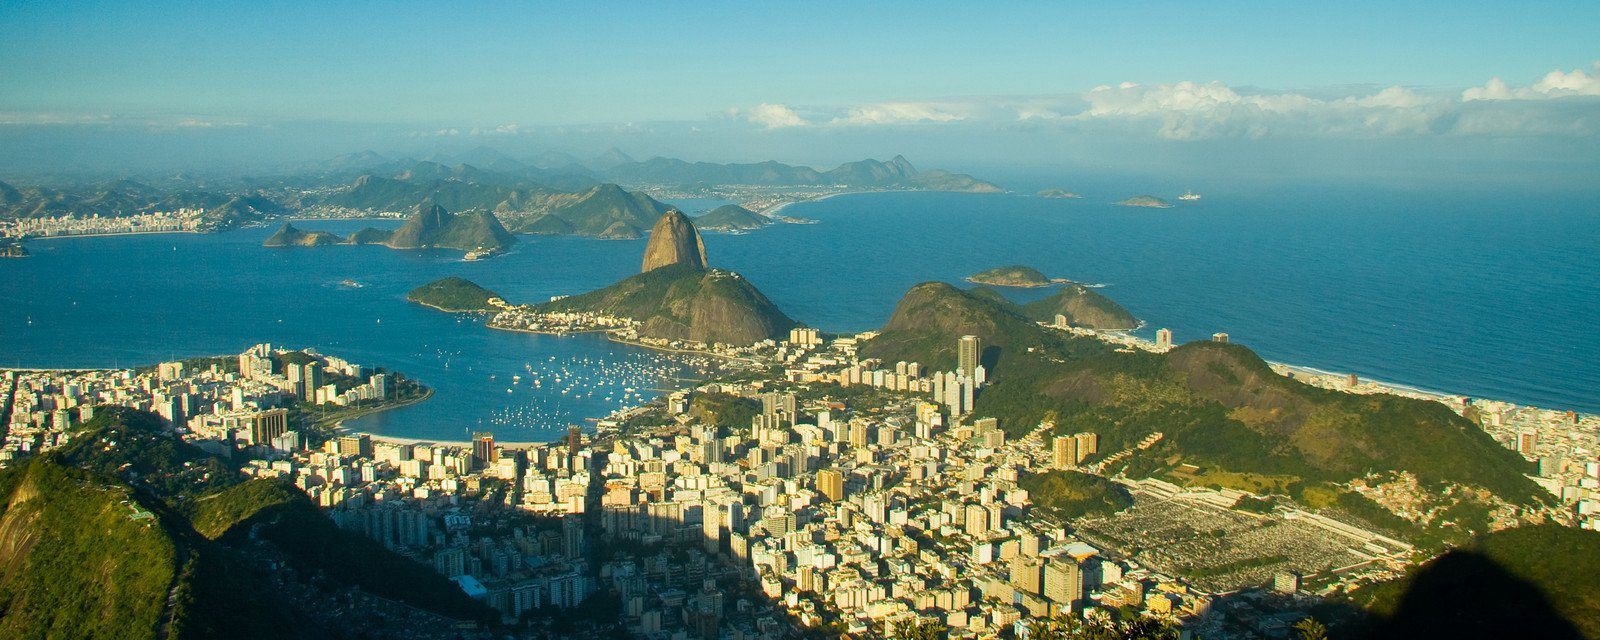 View over Rio de Janeiro in brazil from Sugarloaf Mountain